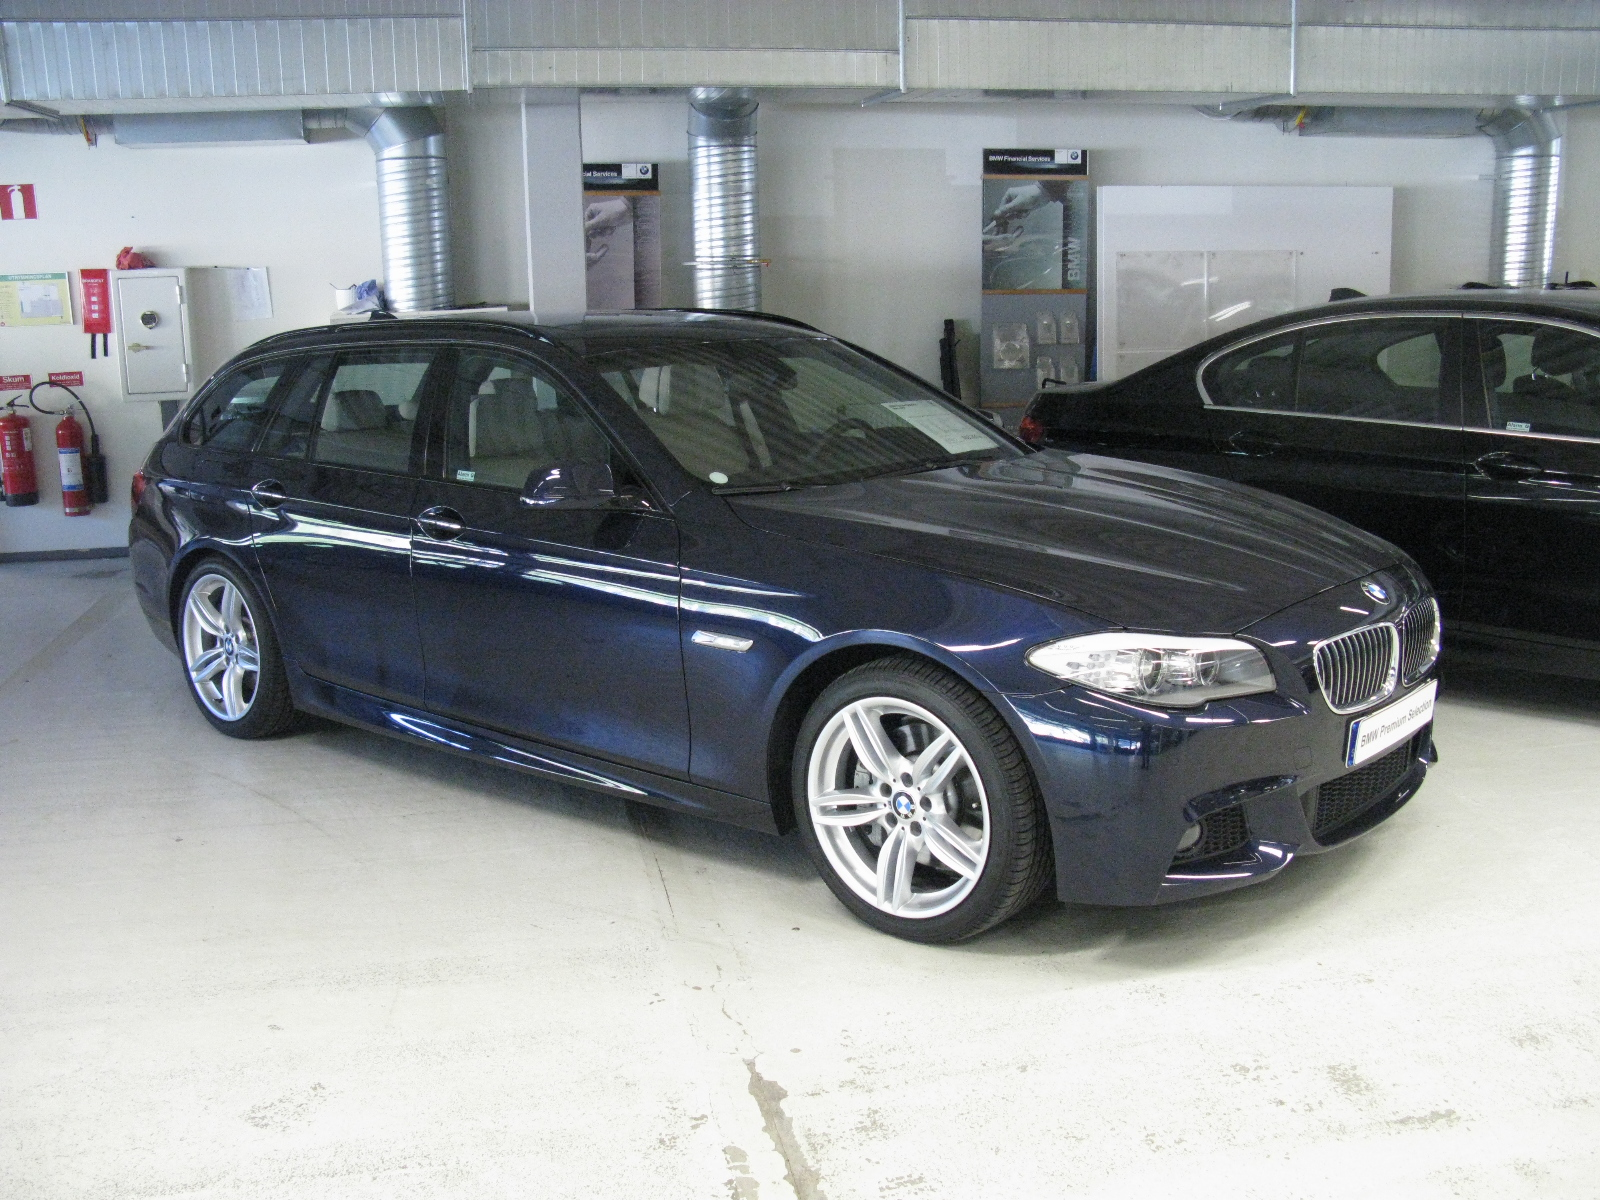 file bmw 530d touring m sport f11 9902290244 jpg wikimedia commons. Black Bedroom Furniture Sets. Home Design Ideas